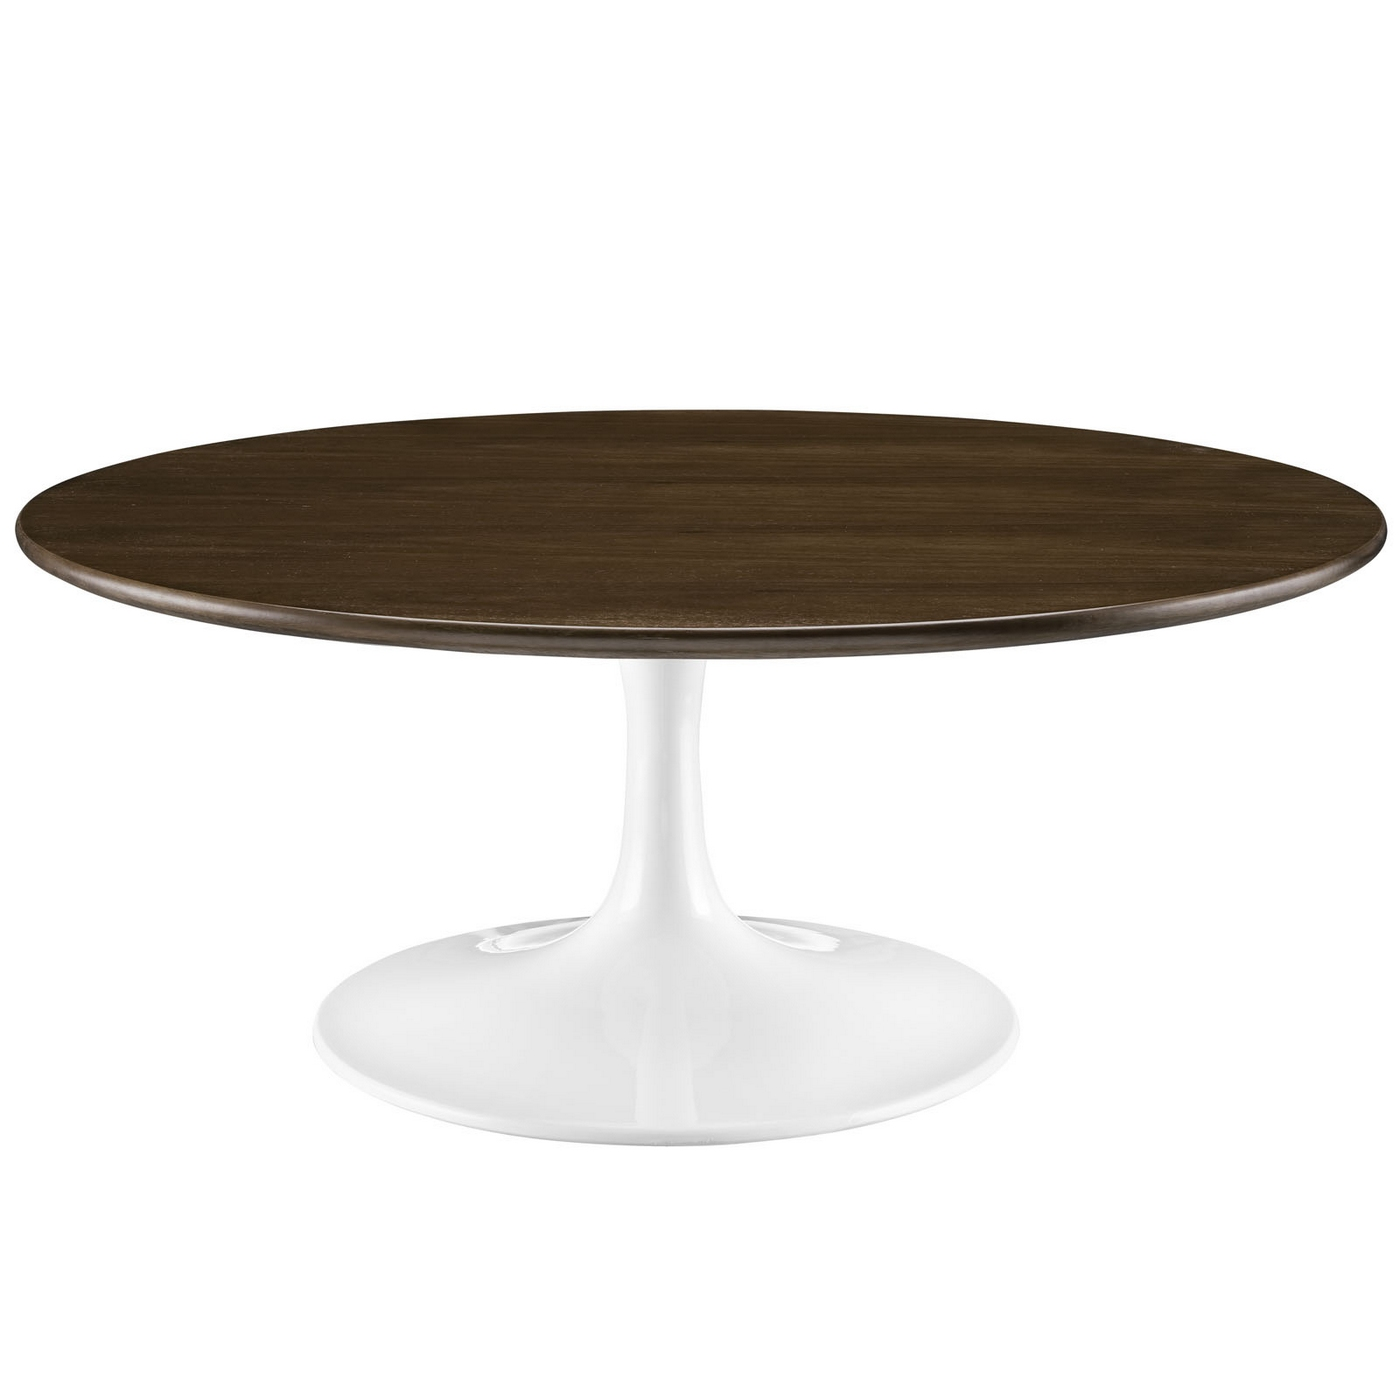 Lippa modern 40 round walnut coffee table with lacquered finish walnut Modern round coffee tables